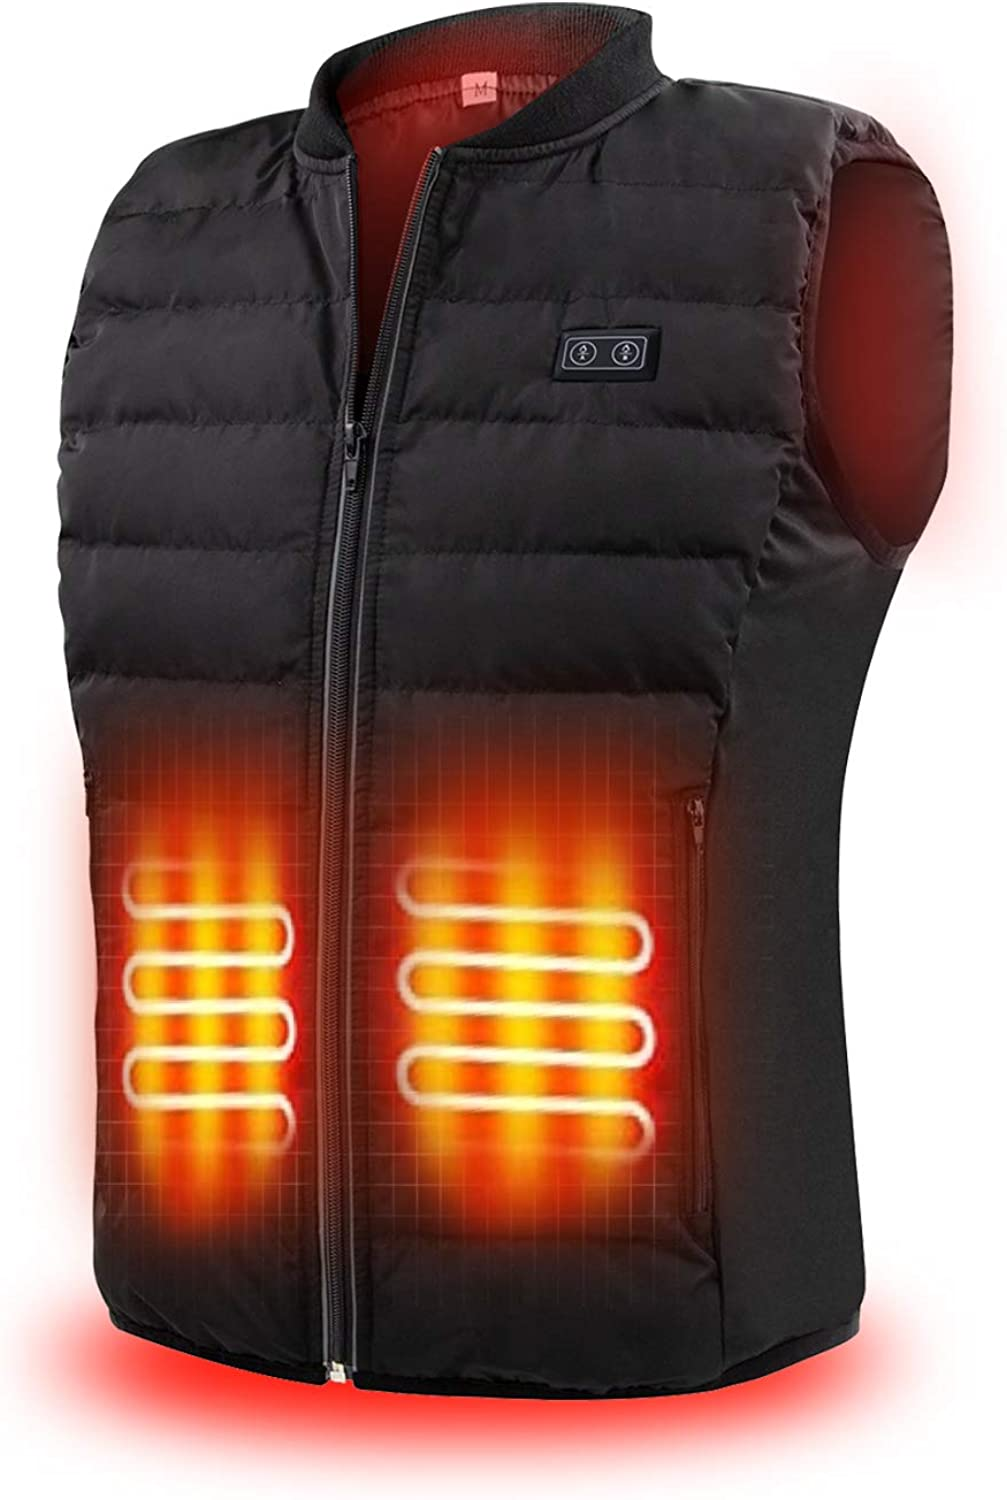 7.4V Heated Vest Lightweight Washable Heating Jacket Rechargeable Battery Pack